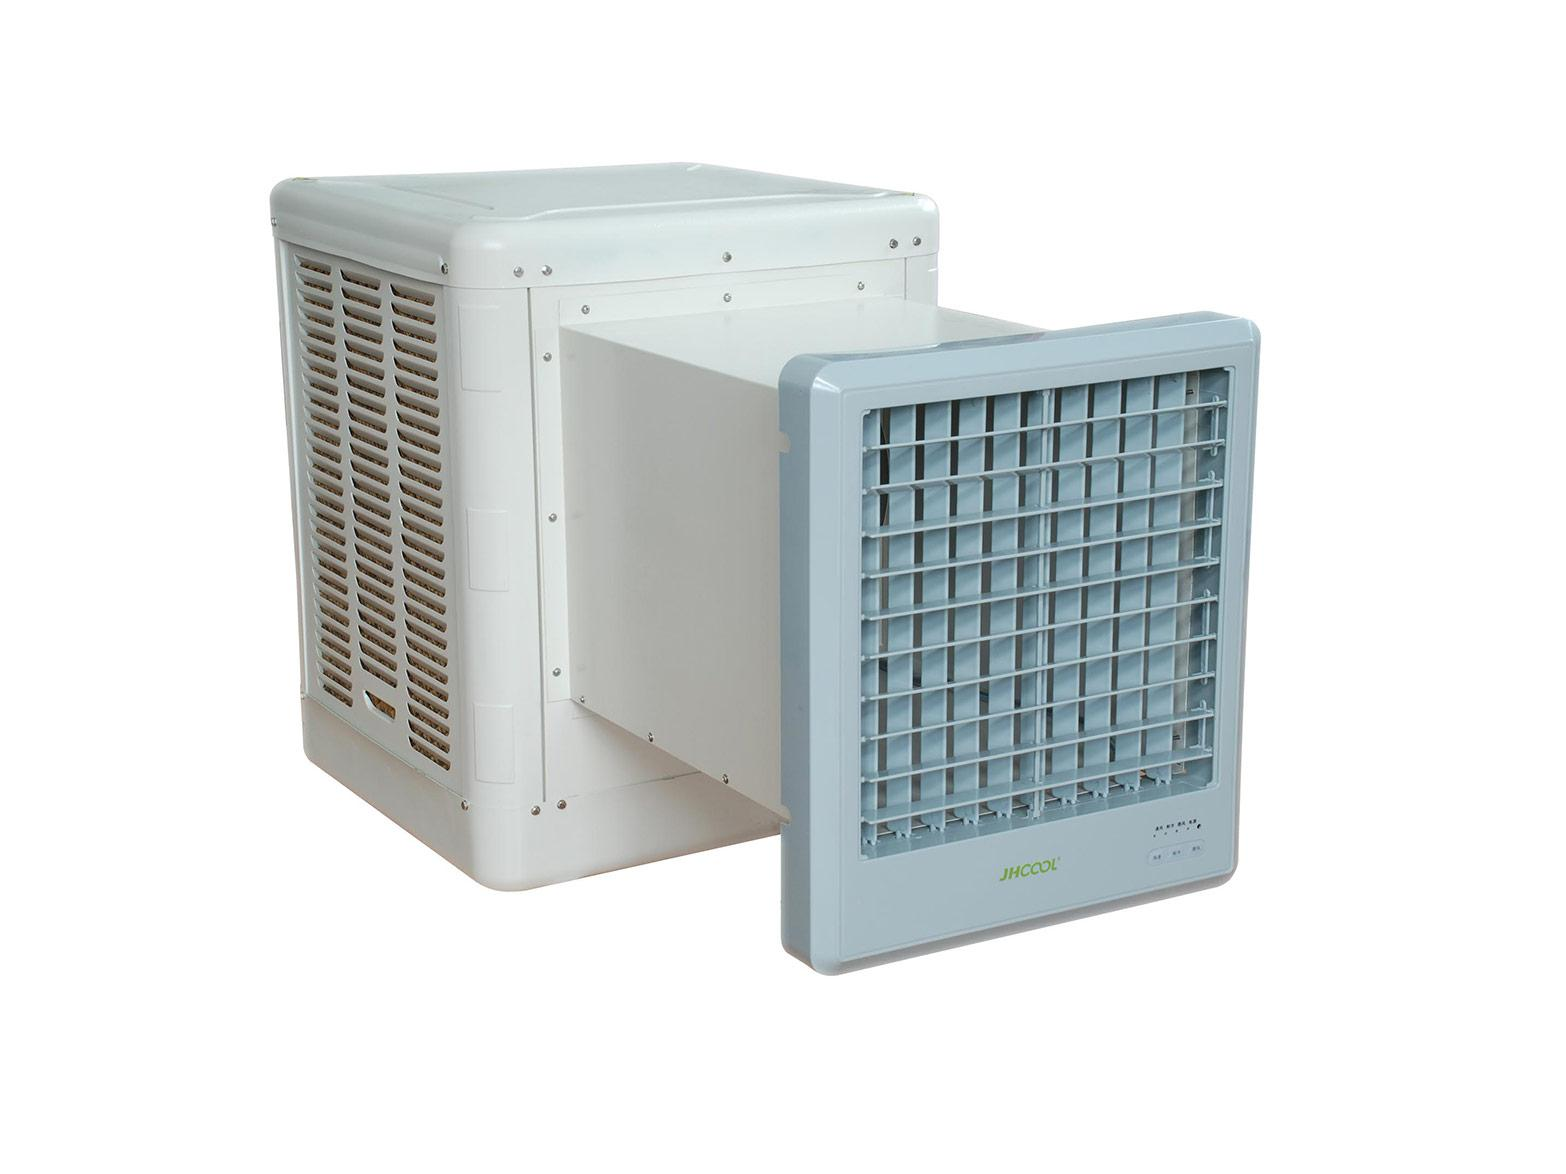 #5B4C3A JH Cool S Series Evaporative Air Cooler For Sale In South  Best 8783 Air Conditioning Installation Cape Town photos with 1566x1174 px on helpvideos.info - Air Conditioners, Air Coolers and more